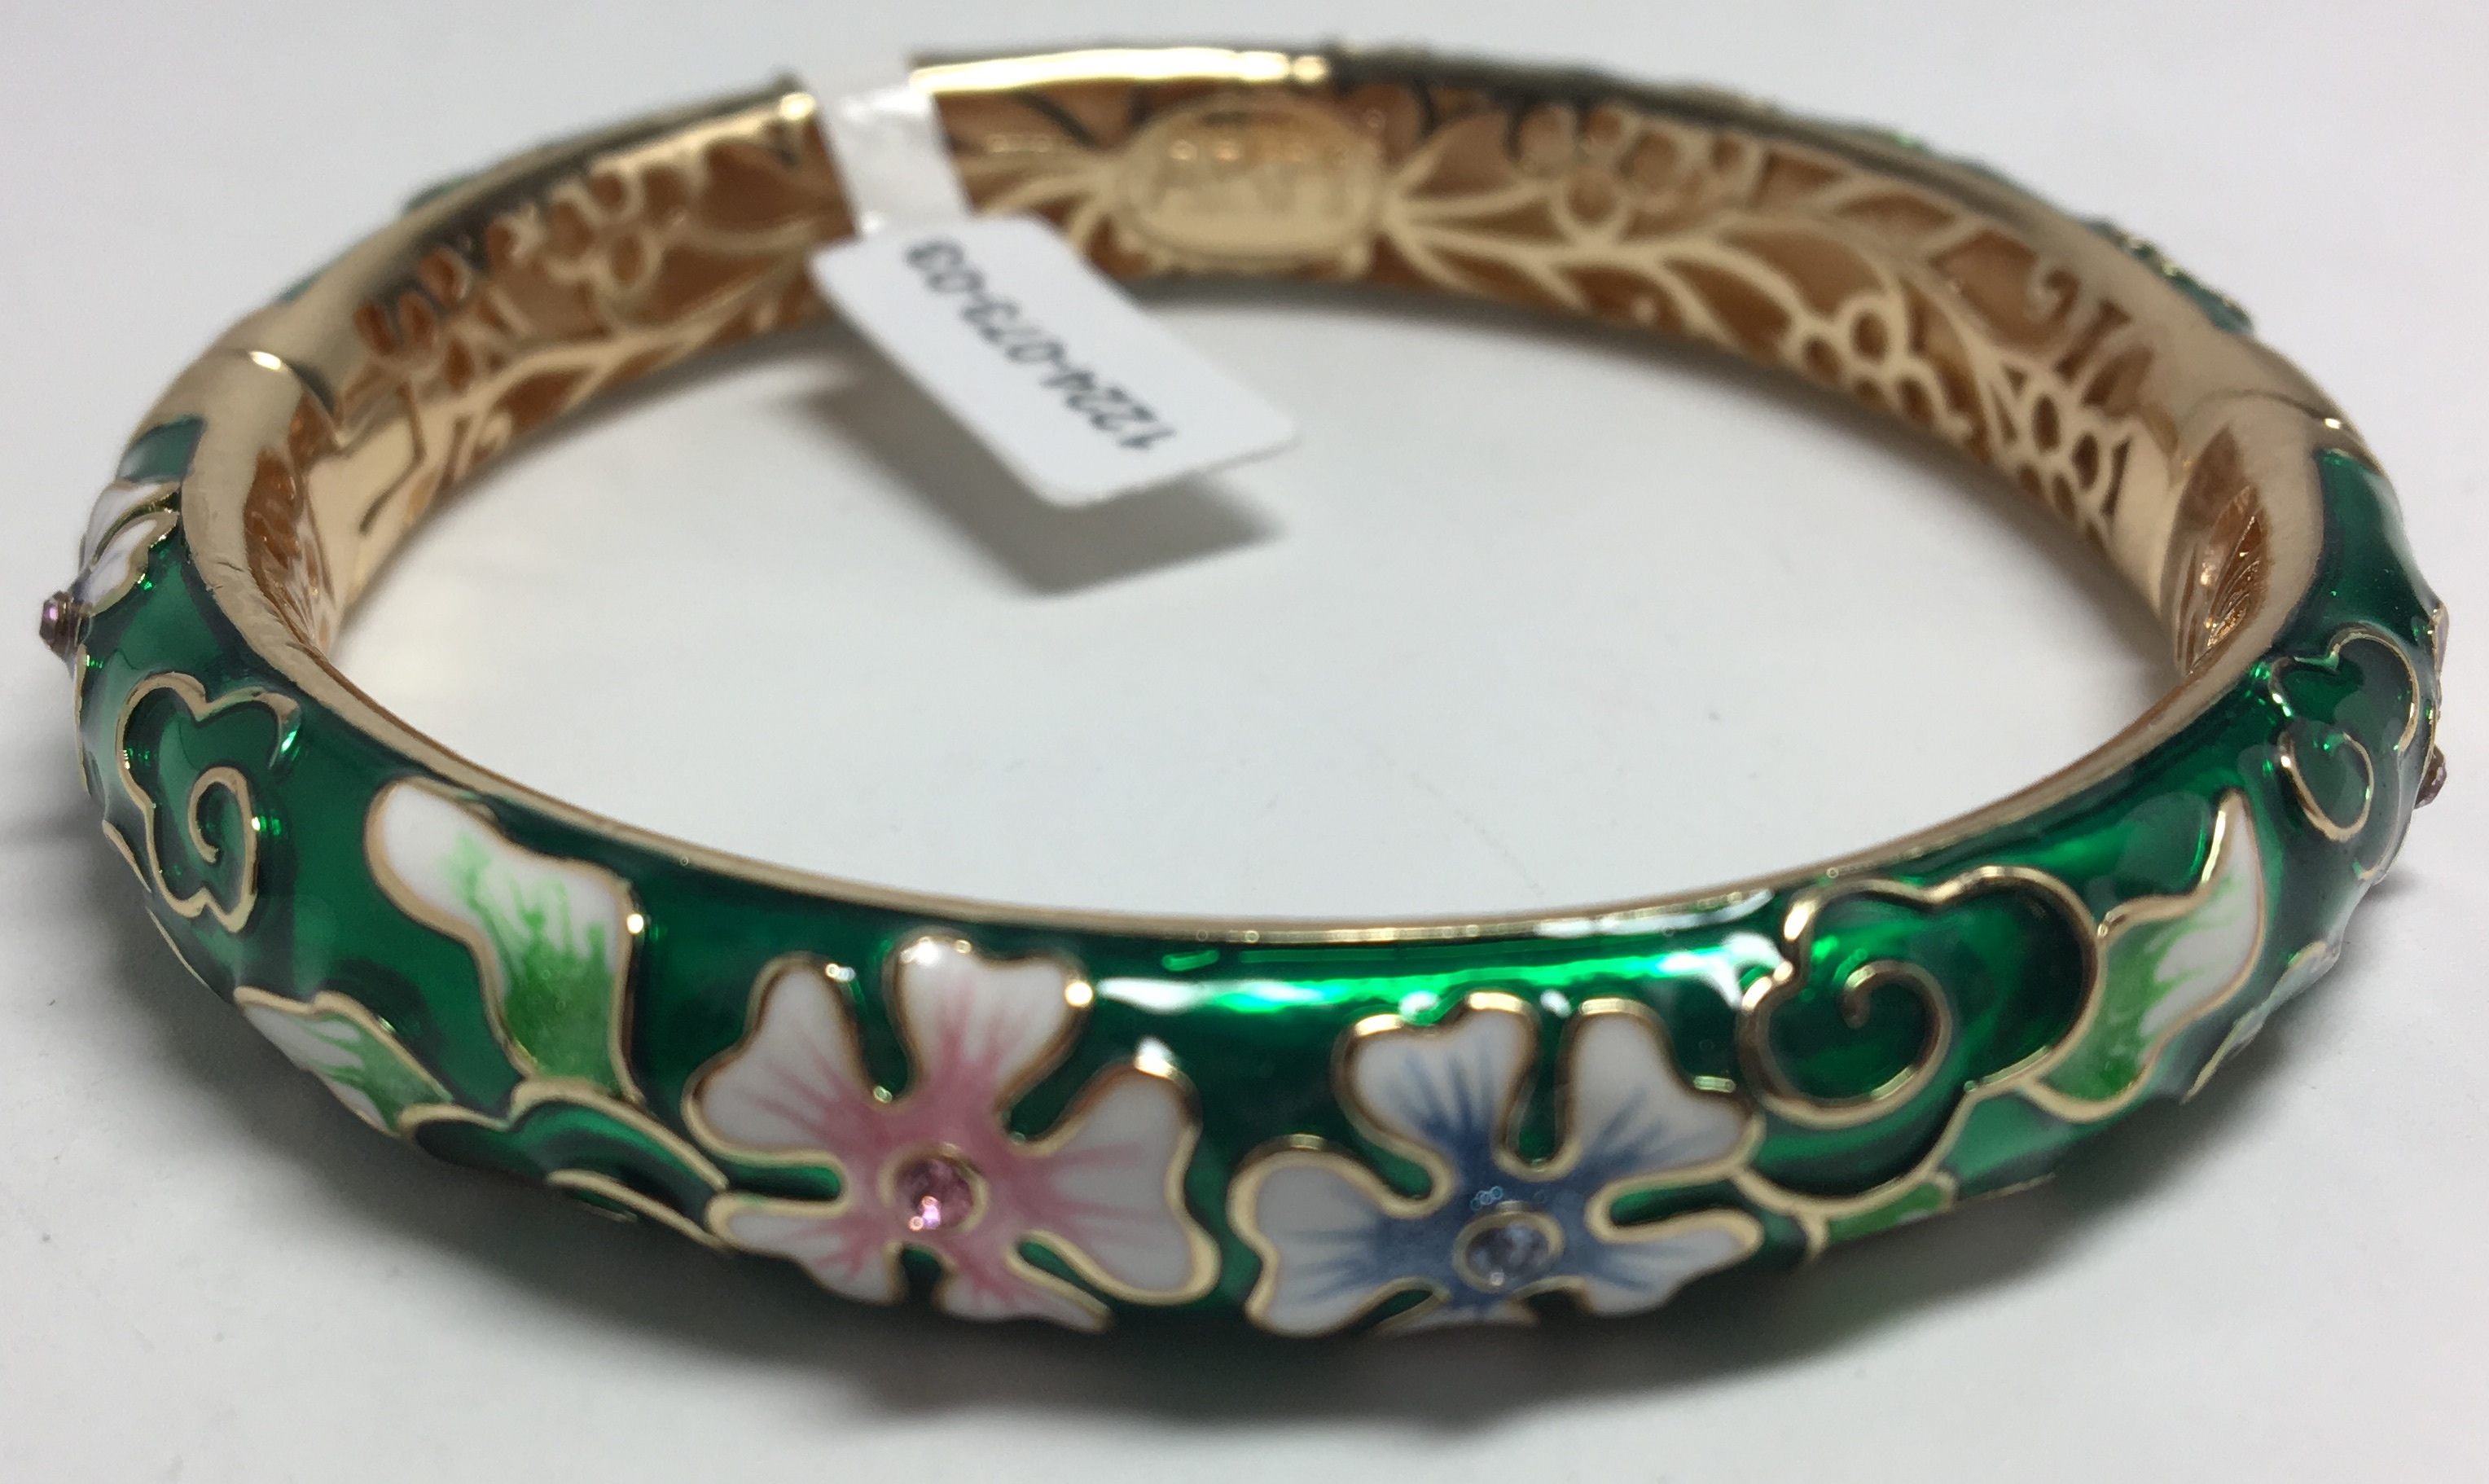 Quintuple Leaf Green Bracelet with Enamel (by AKM Gifts)